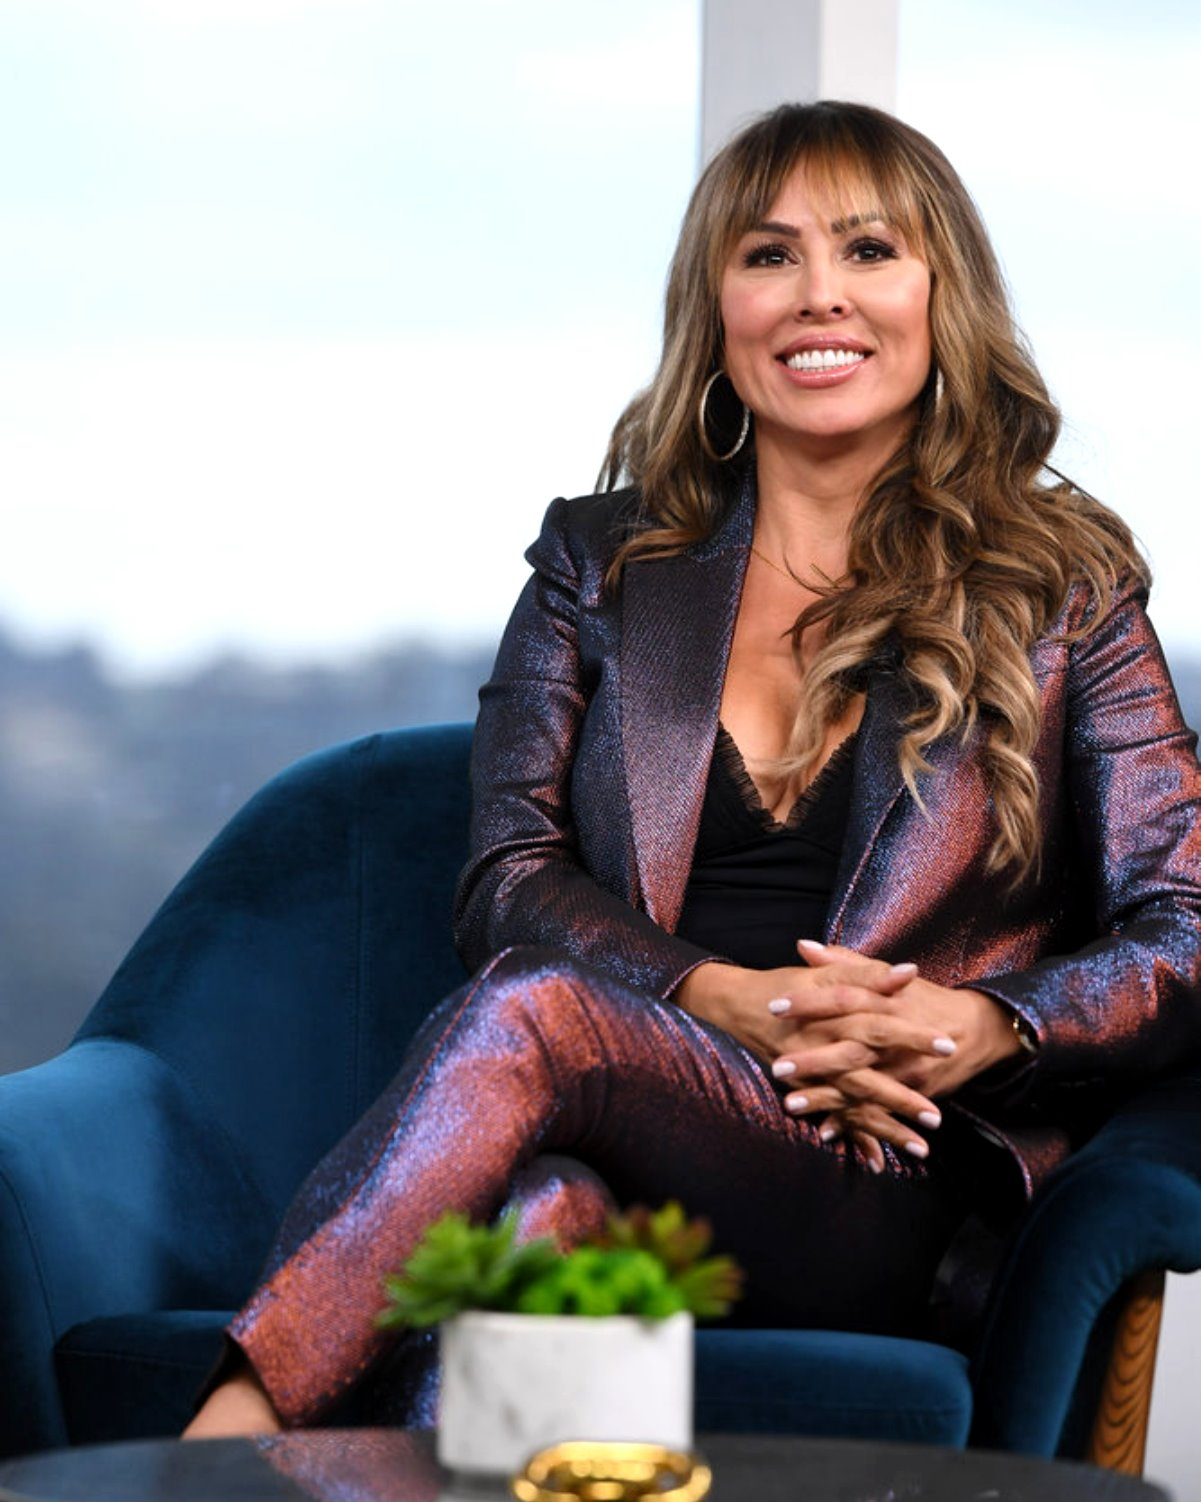 Kelly Dodd Denies She Was Fired From RHOC Amid Rumors, Reveals When Filming is Set to Resume on Season 15